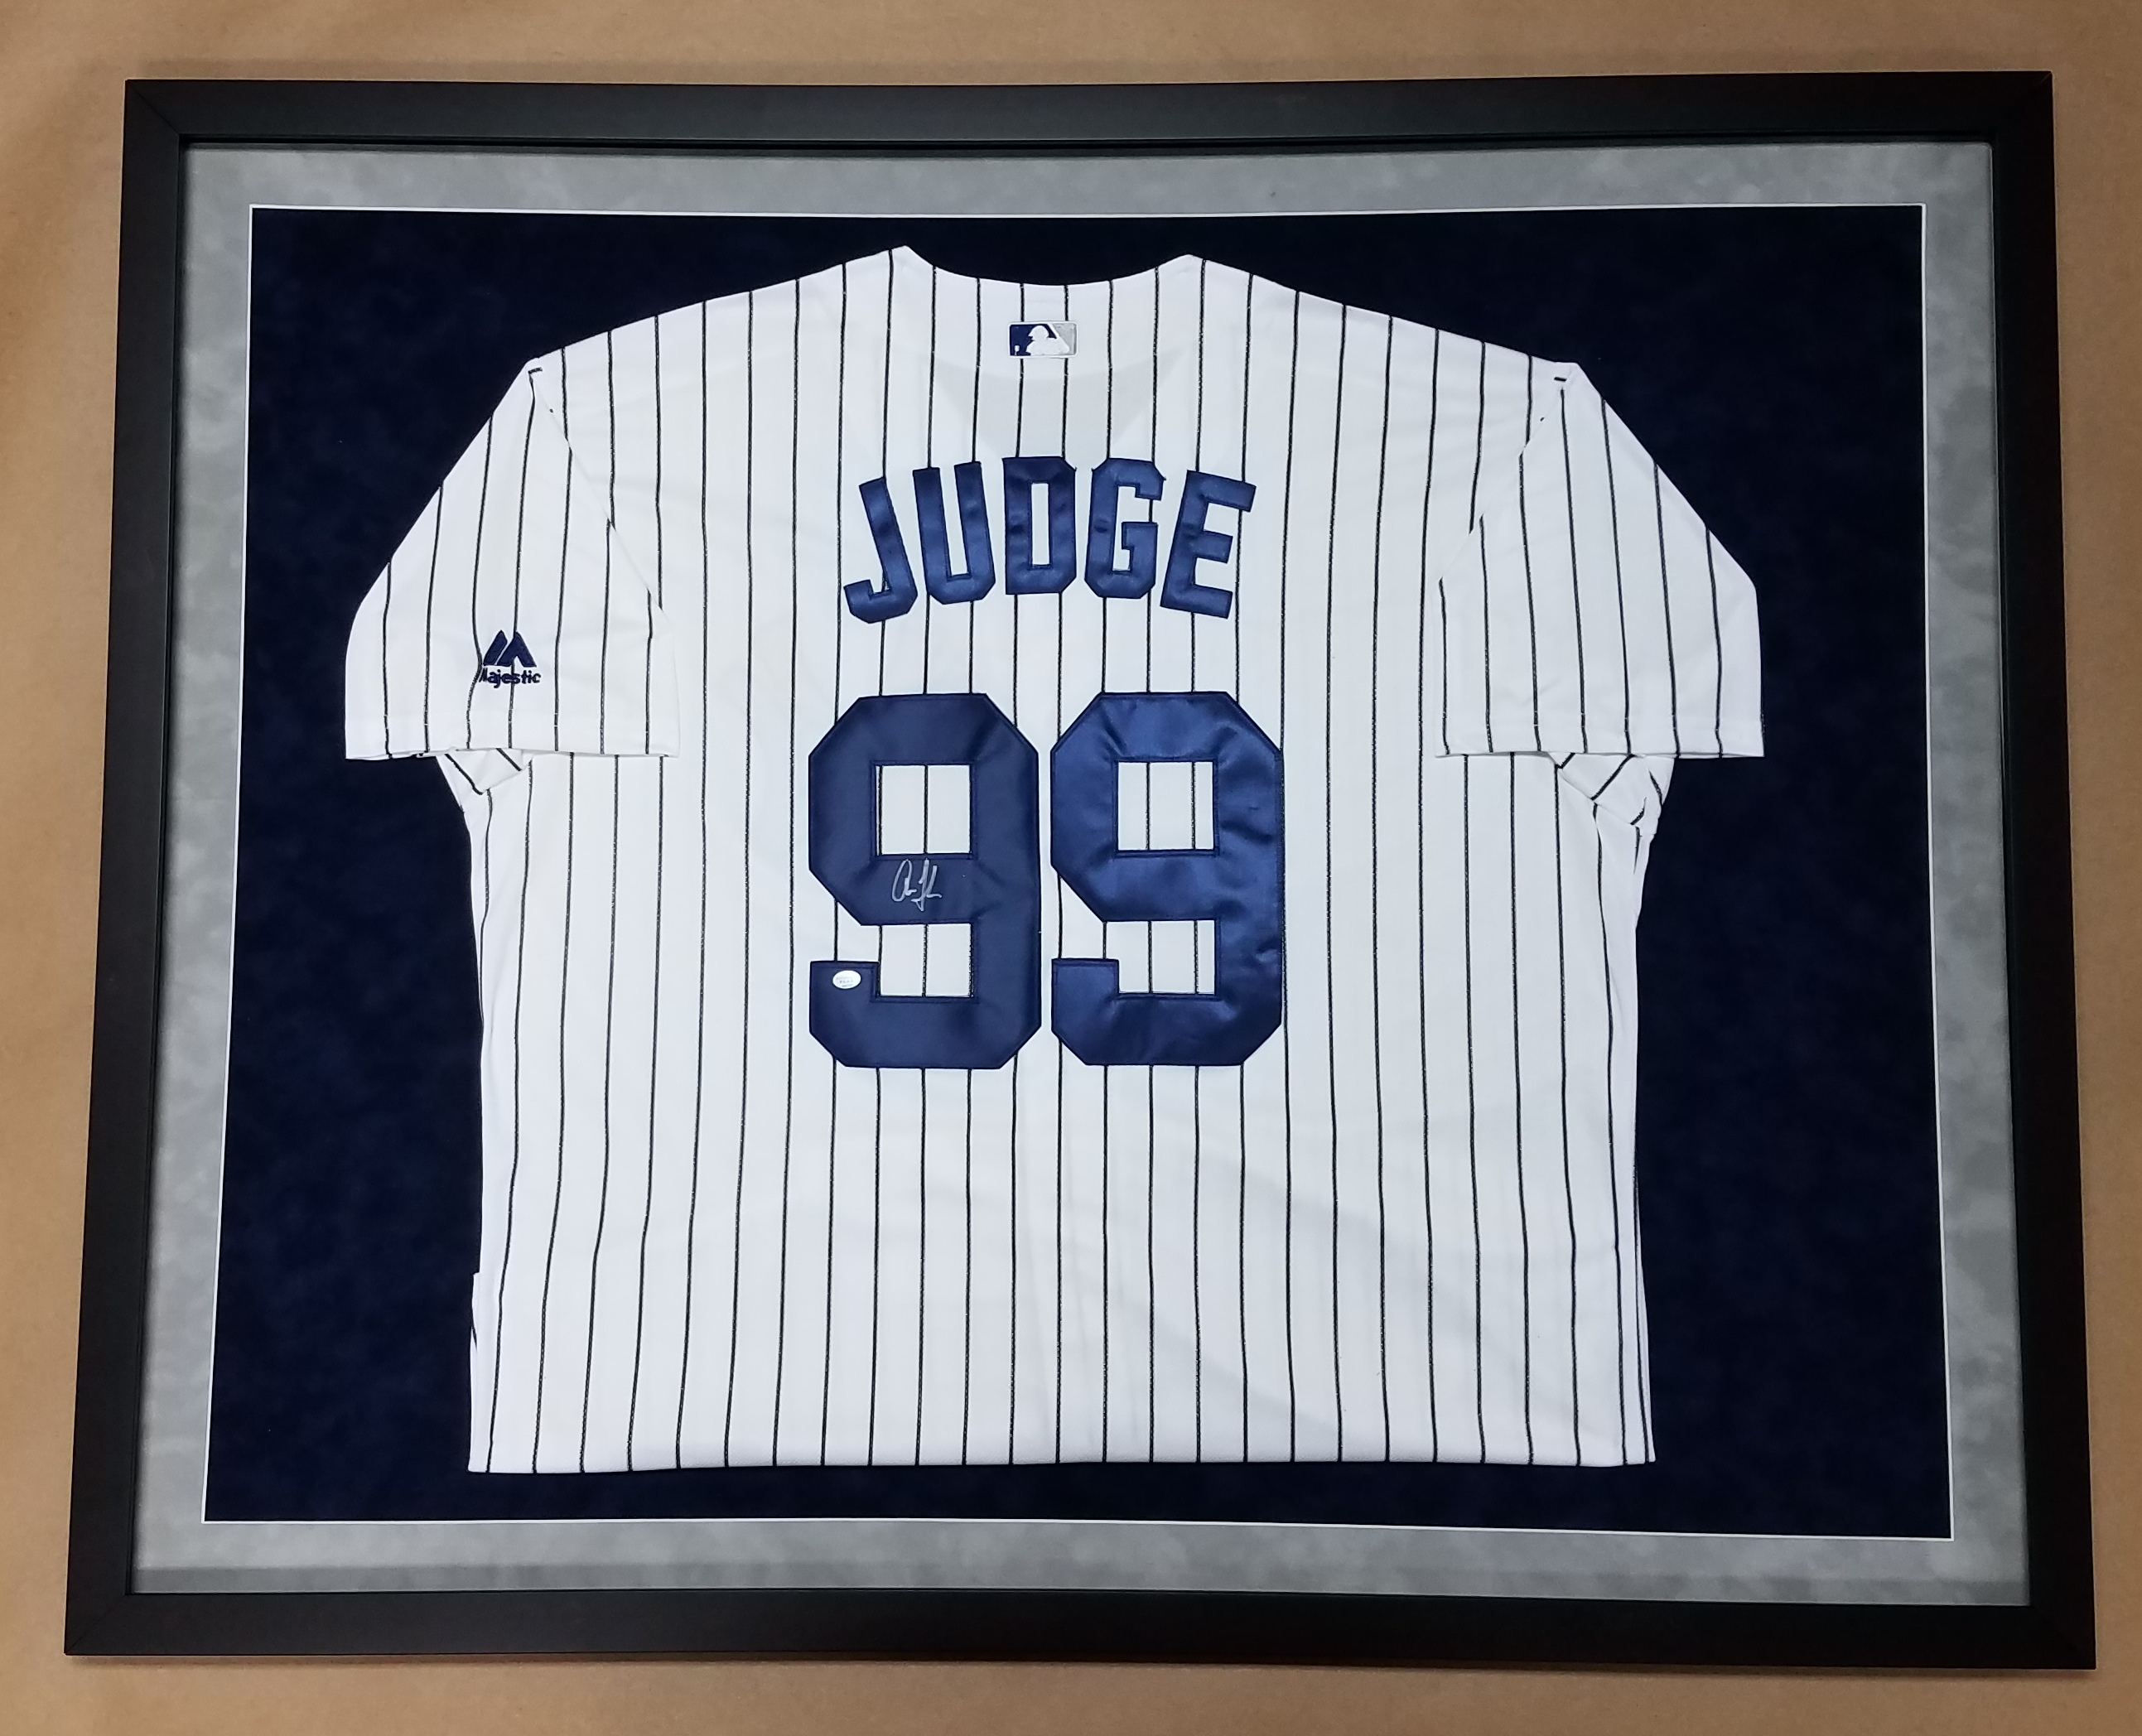 aefc14738 Framed Aaron Judge New York Yankees Jersey! Autographed! – Columbia ...